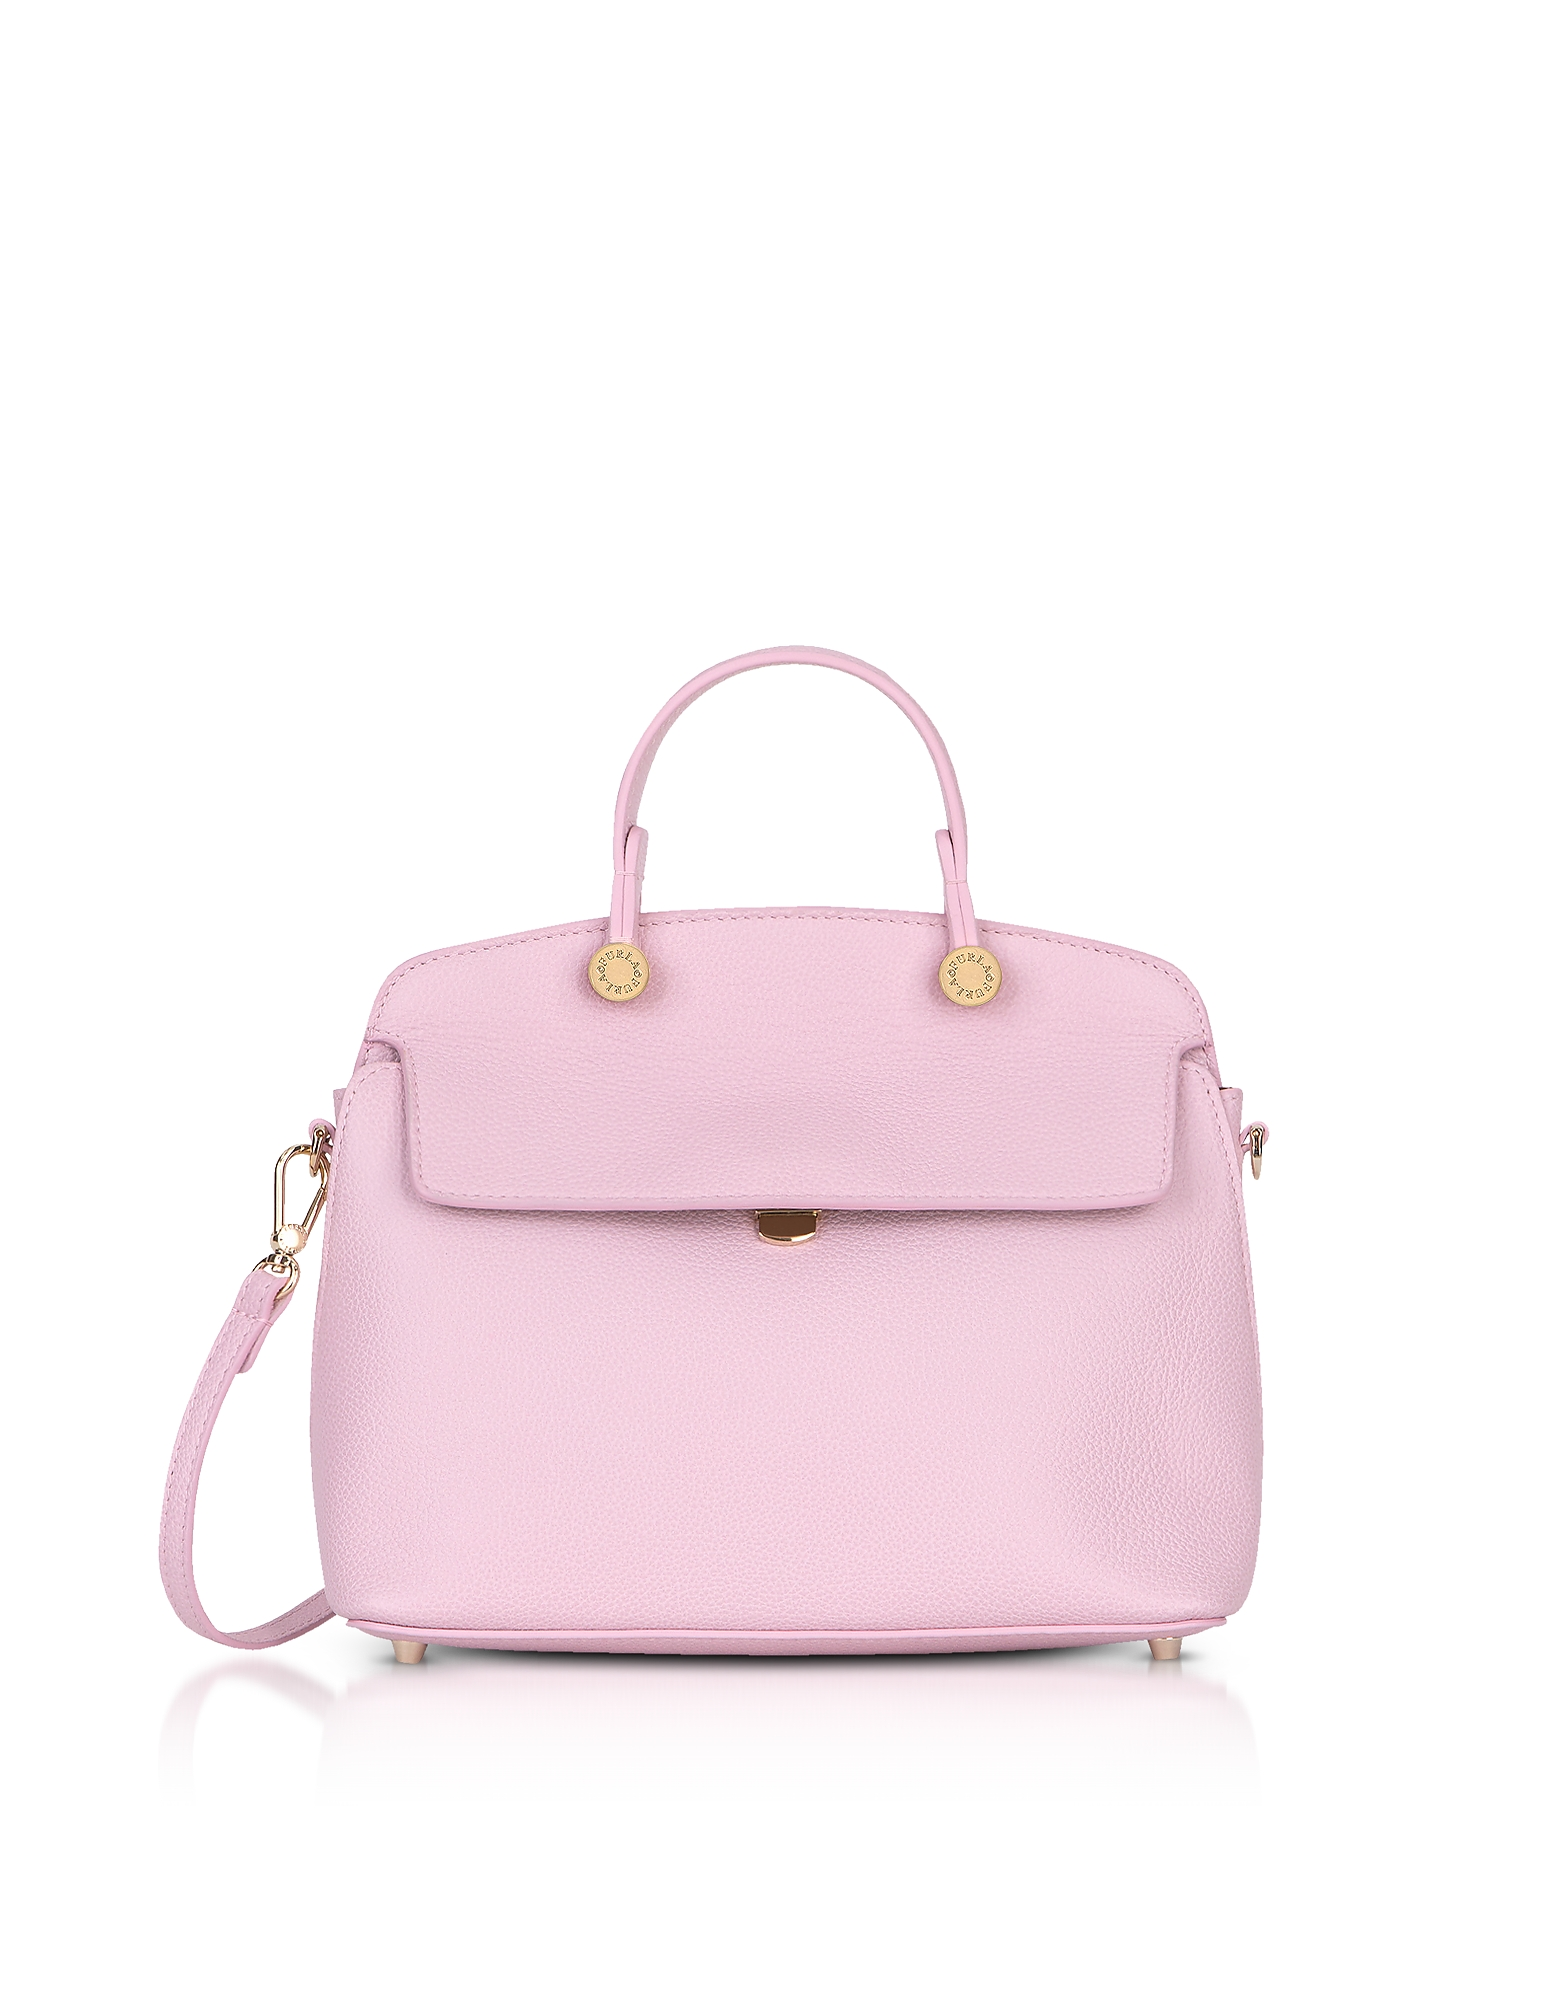 Furla Handbags, Genuine Leather My Piper Small Satchel